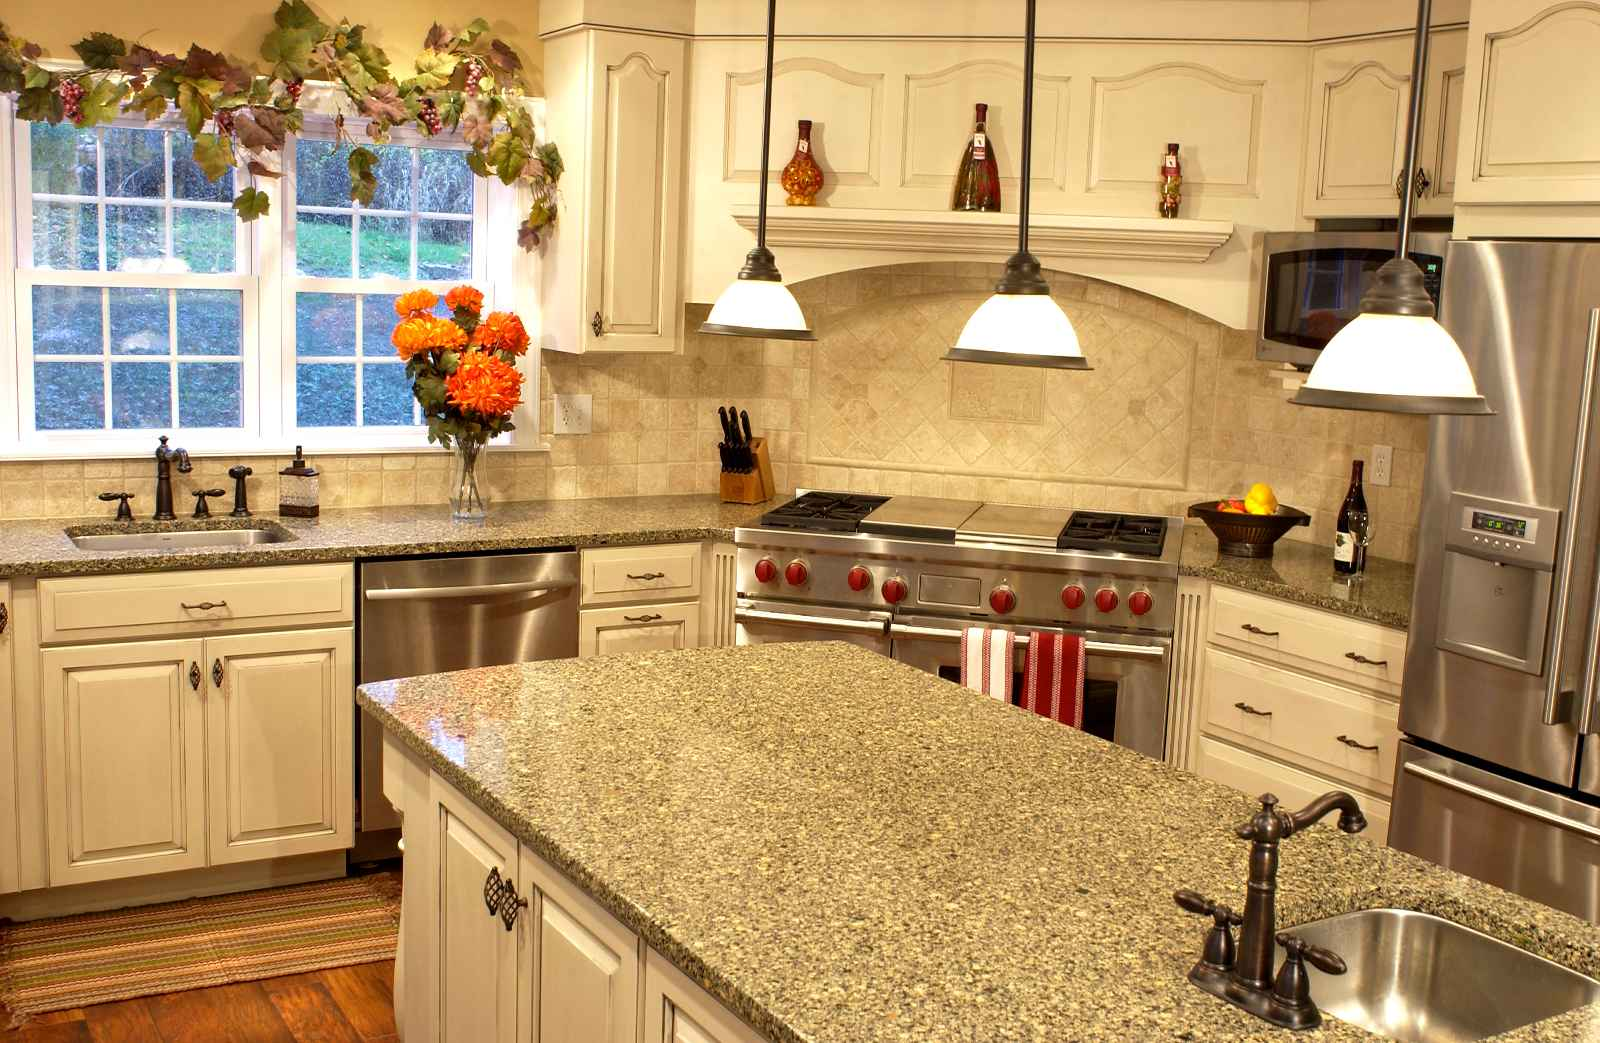 Cheap countertop ideas and design Kitchen countertop ideas